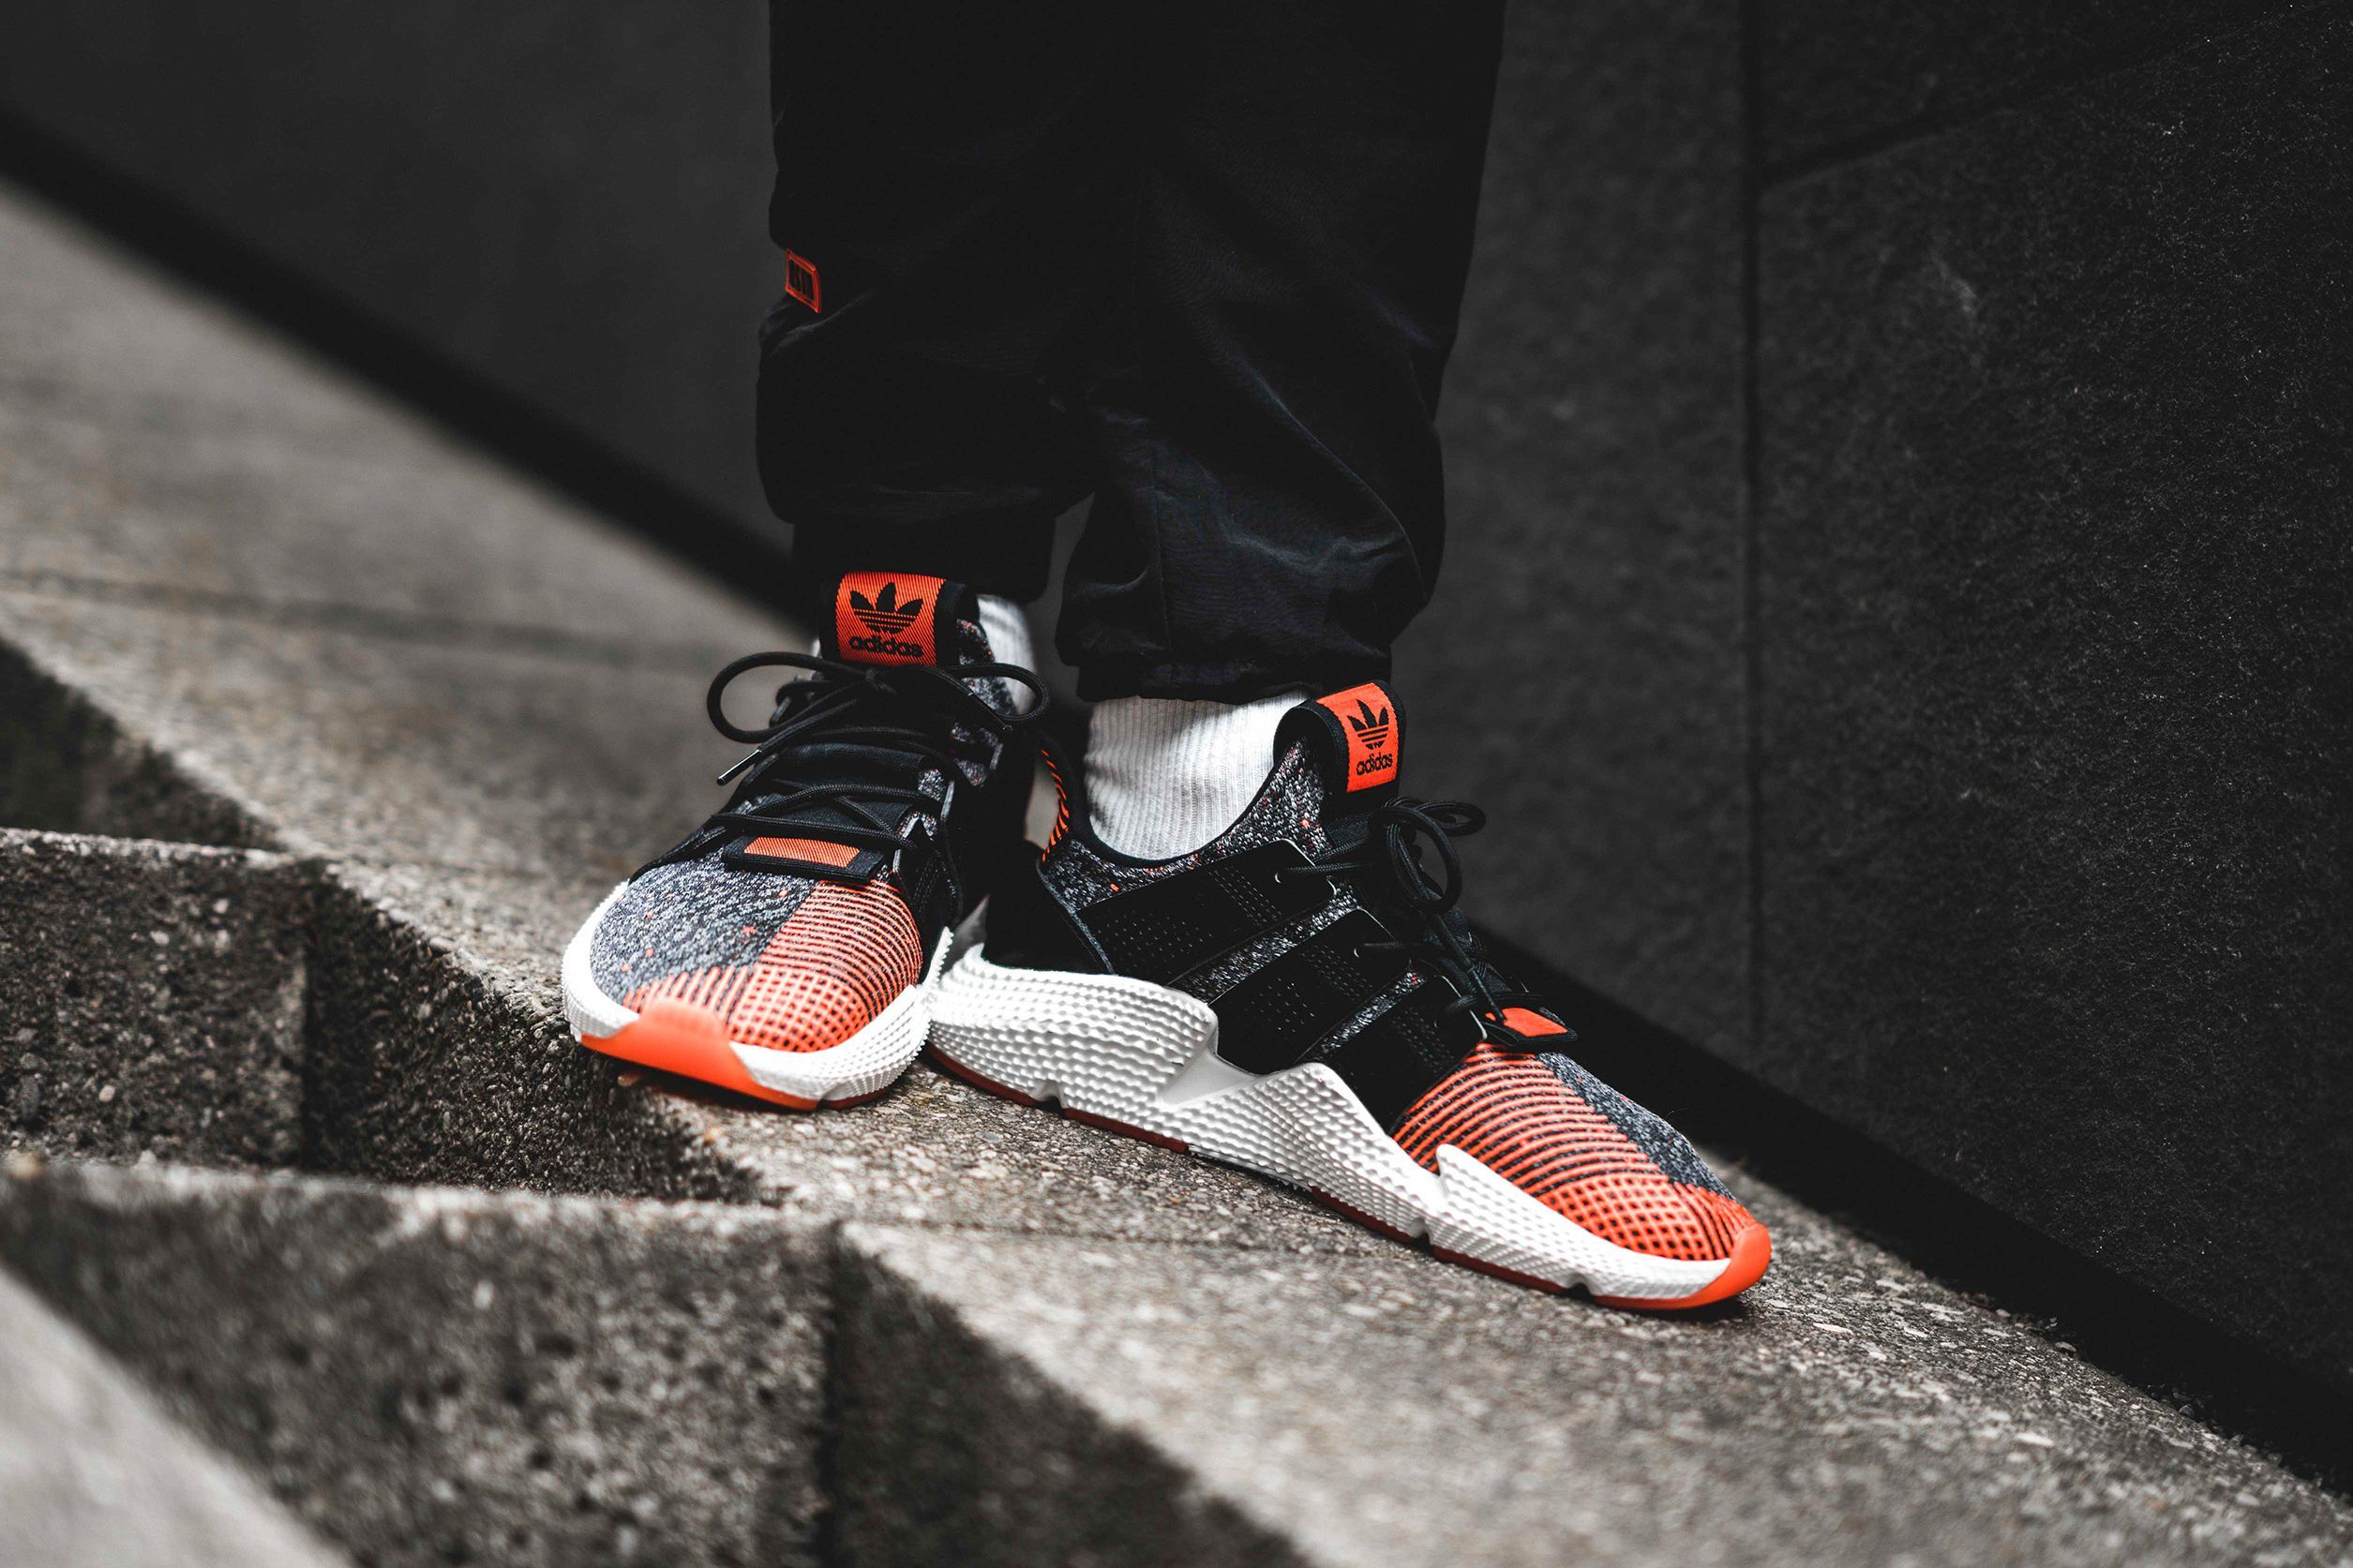 34483c0afe Your opinion on adidas  new silhouette -